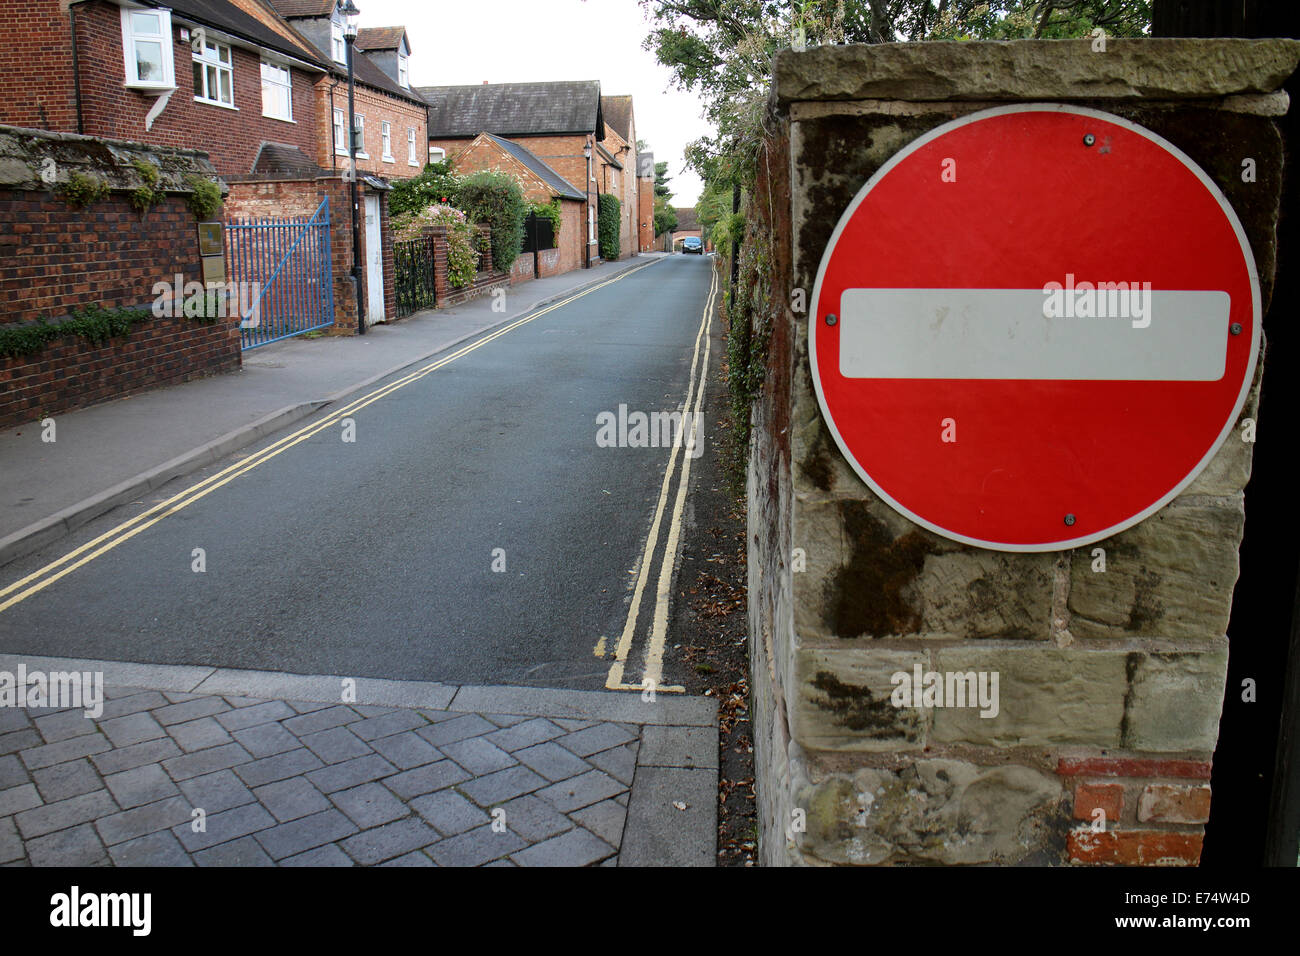 No entry sign and one-way street - Stock Image